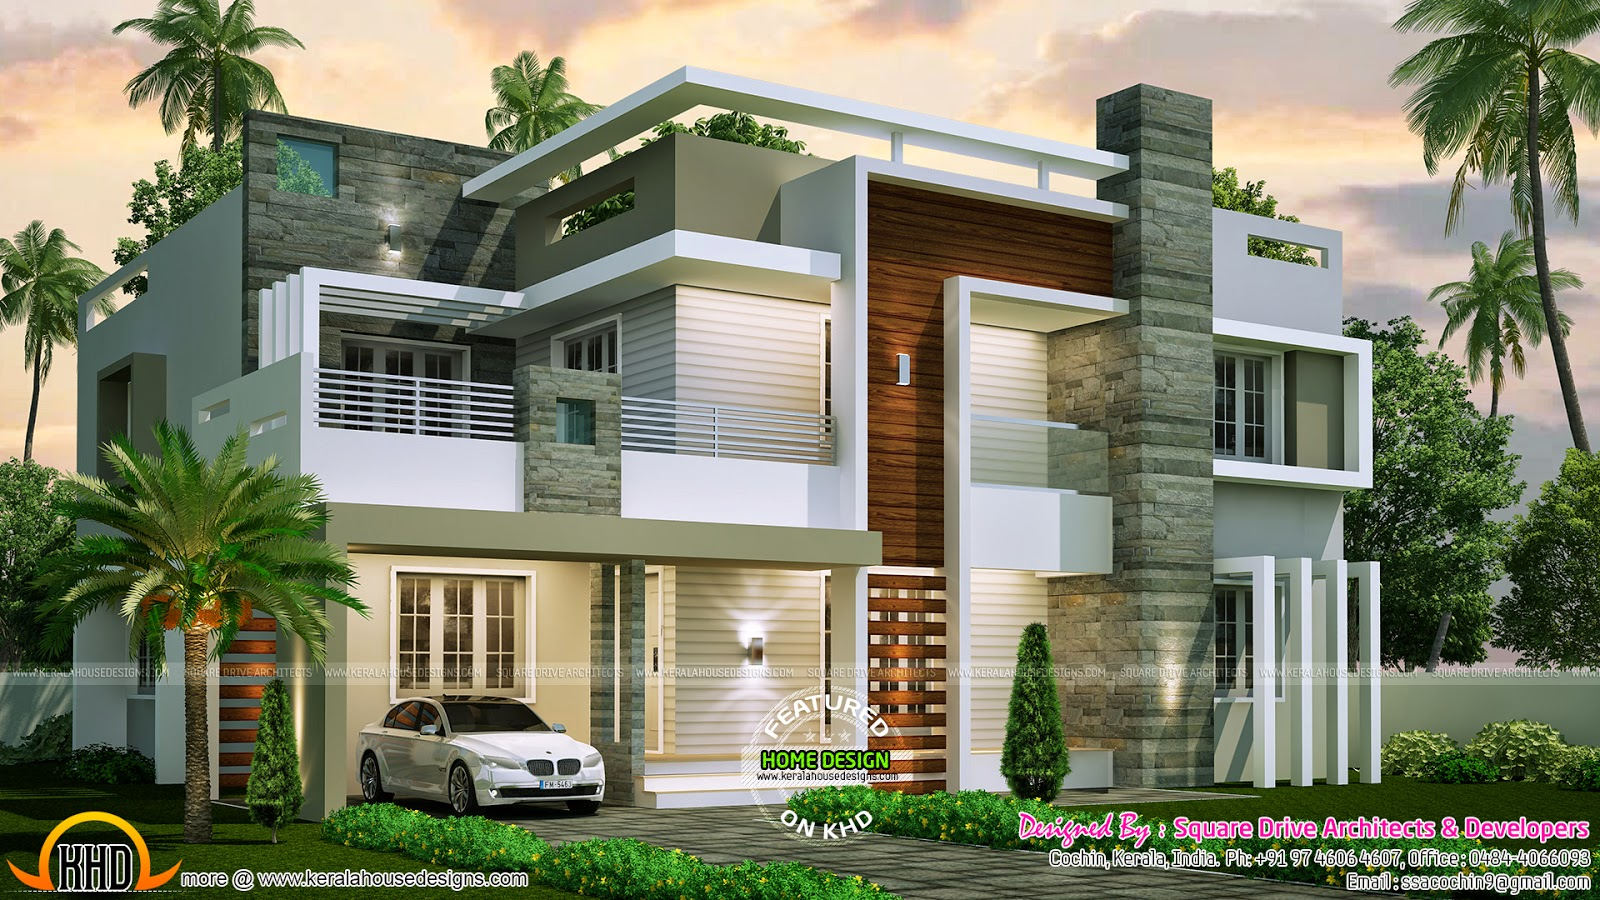 4 bedroom contemporary home design kerala home design for House plans architect